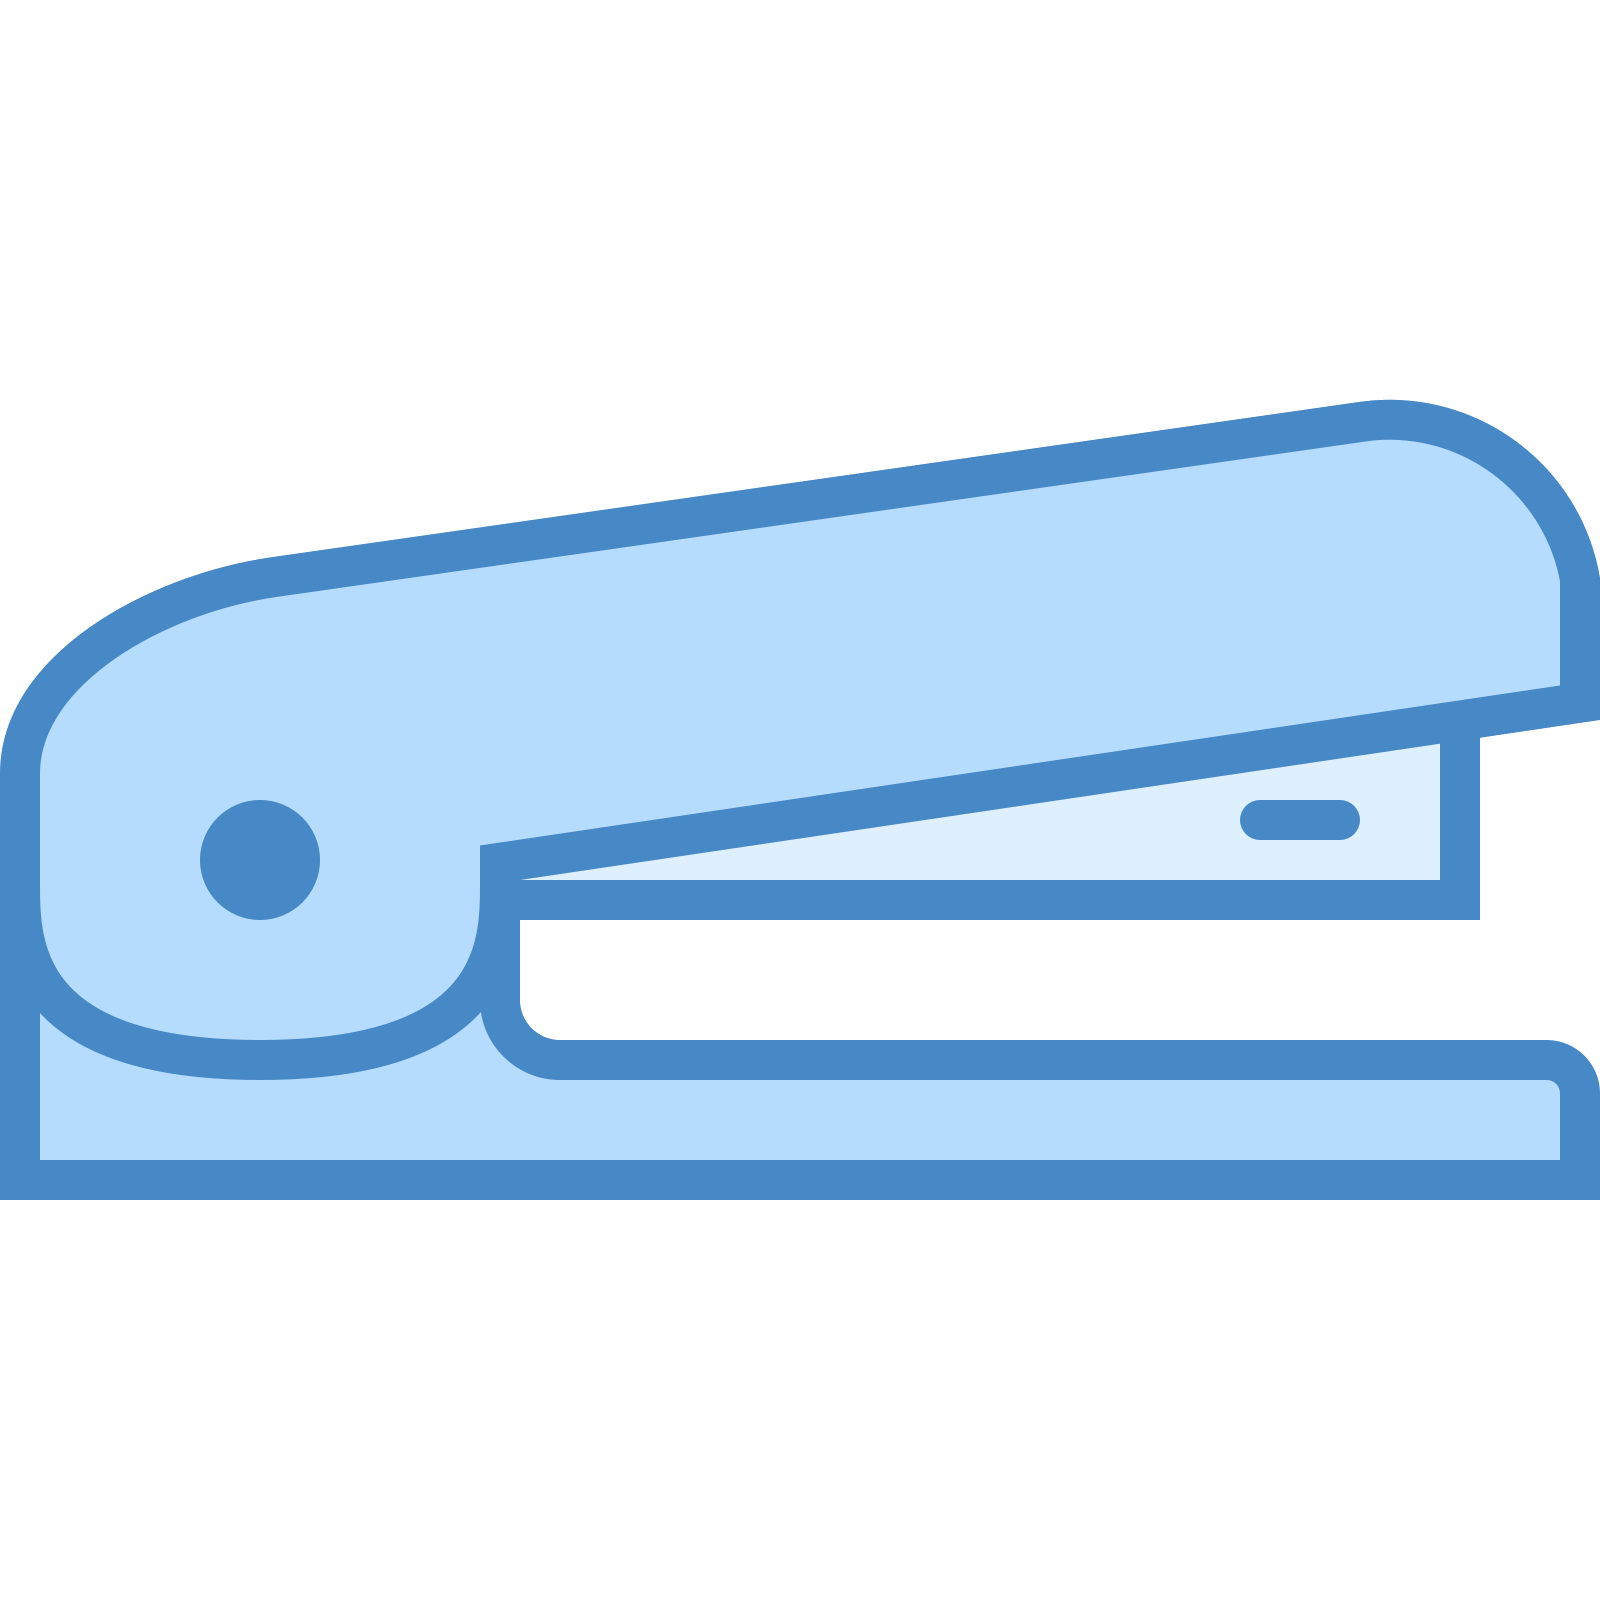 Clipart gun line art. Stapler office supplies staple